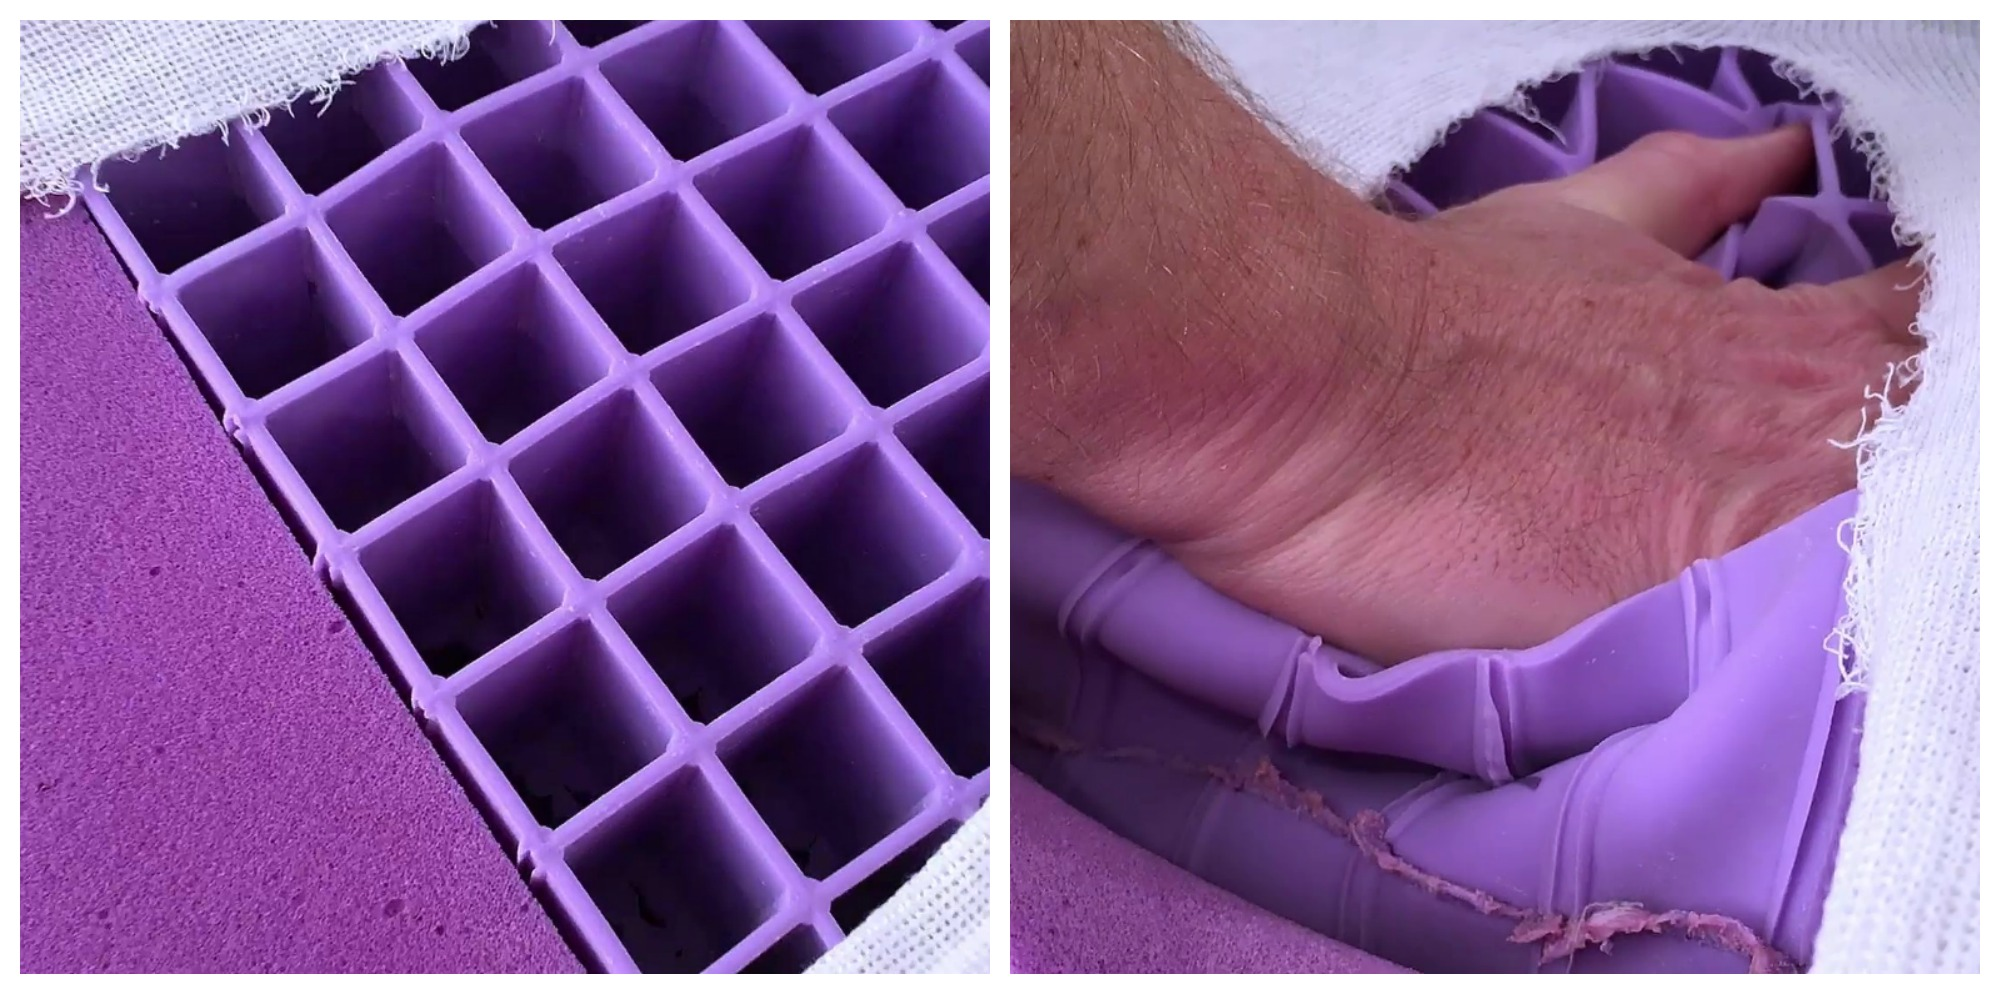 Honeycomb Gel on the Purple Mattress